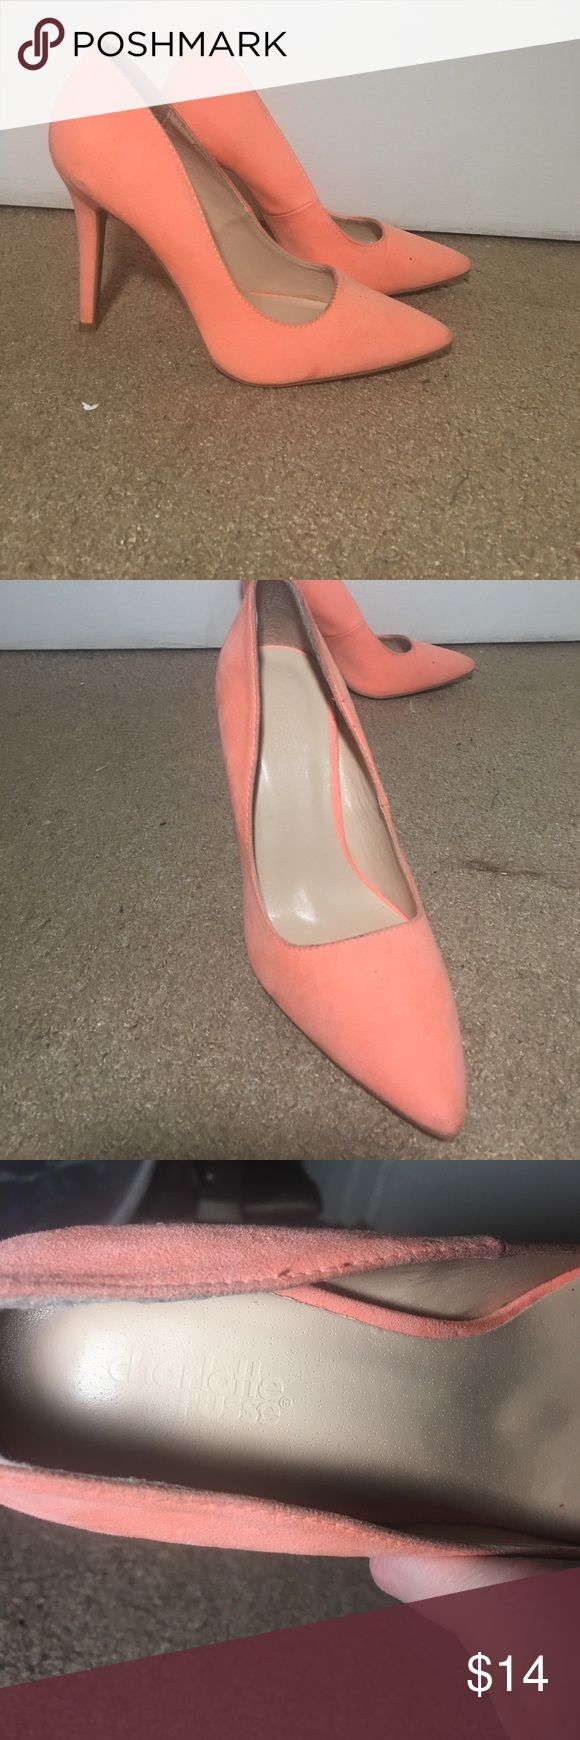 Peach heels Gorgeous peach heels! Only worn once, bought them brand new from Charlotte Russe! They were a little dirty when I bought them from the store but looked ok to me!! Size 7. Open to offers! Charlotte Russe Shoes Heels